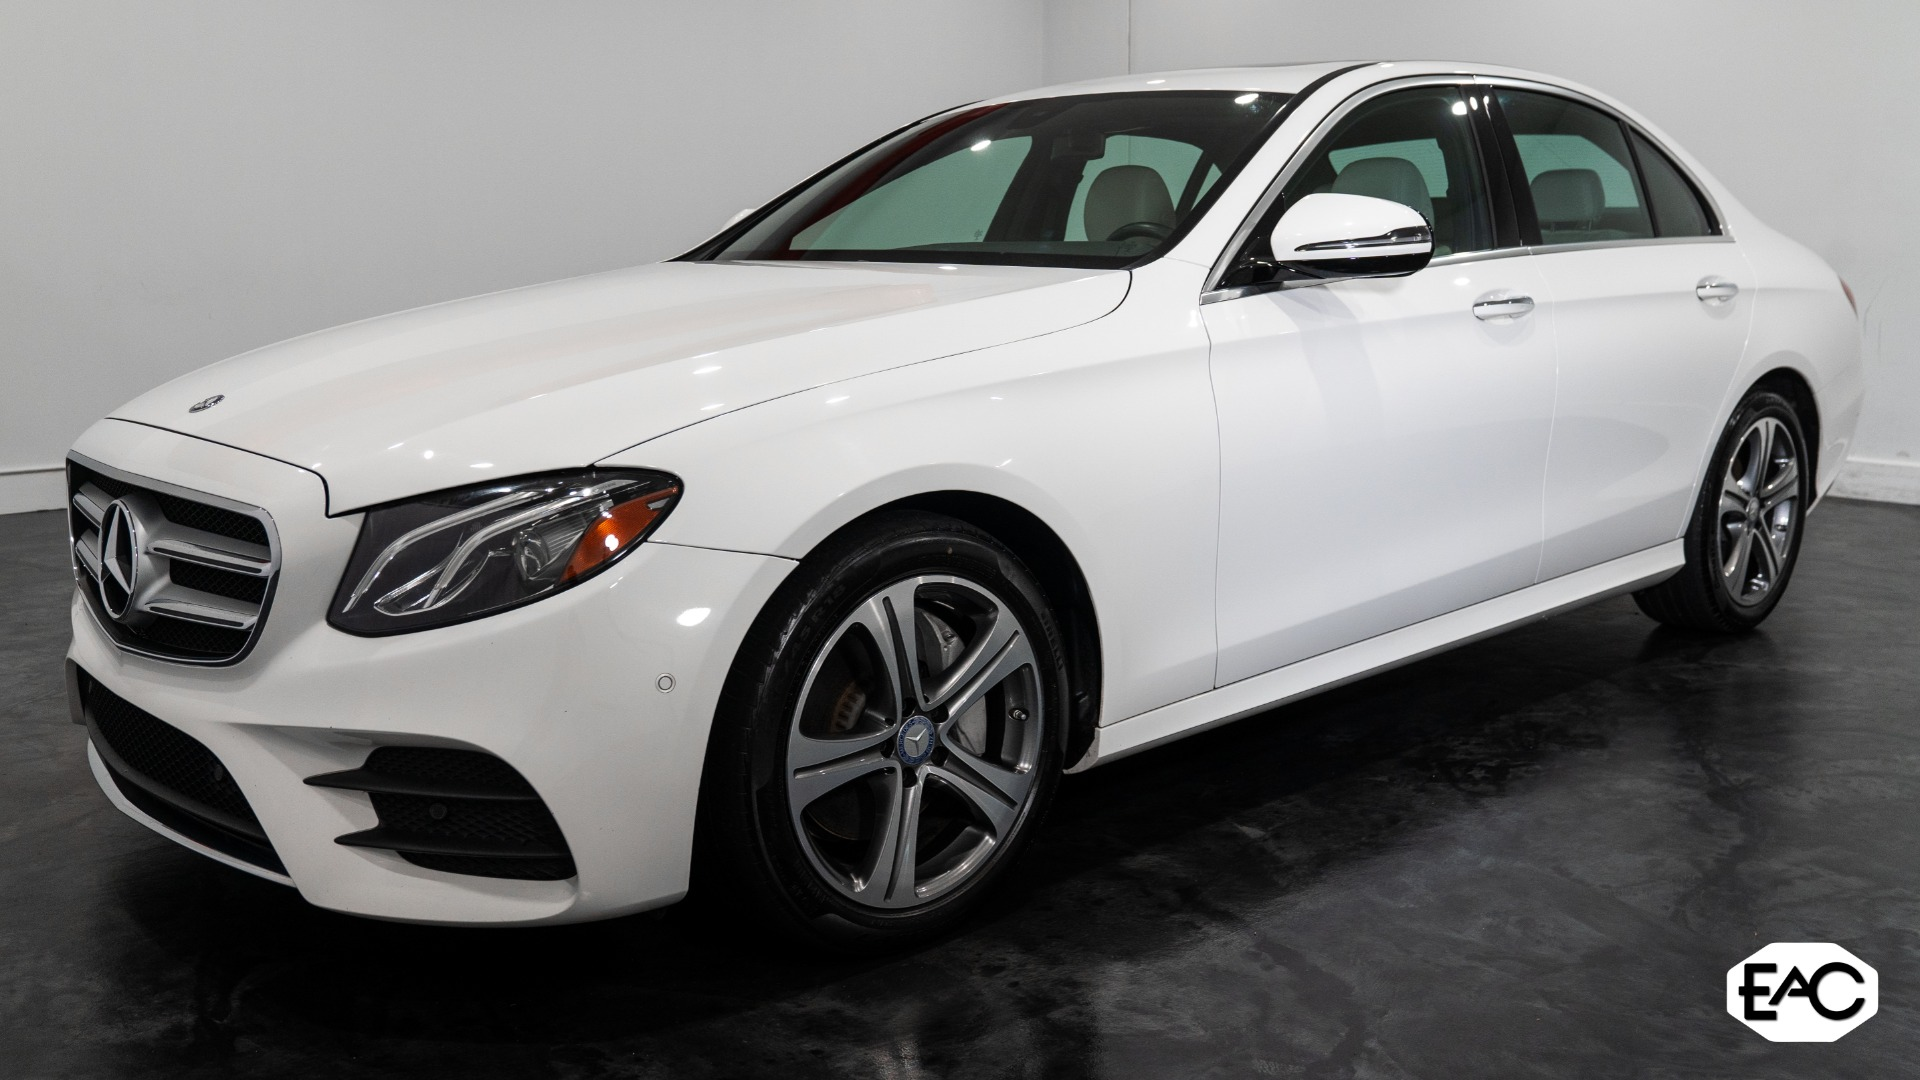 Used 2017 Mercedes-Benz E-Class E 300 4MATIC for sale Sold at Empire Auto Collection in Warren MI 48091 1